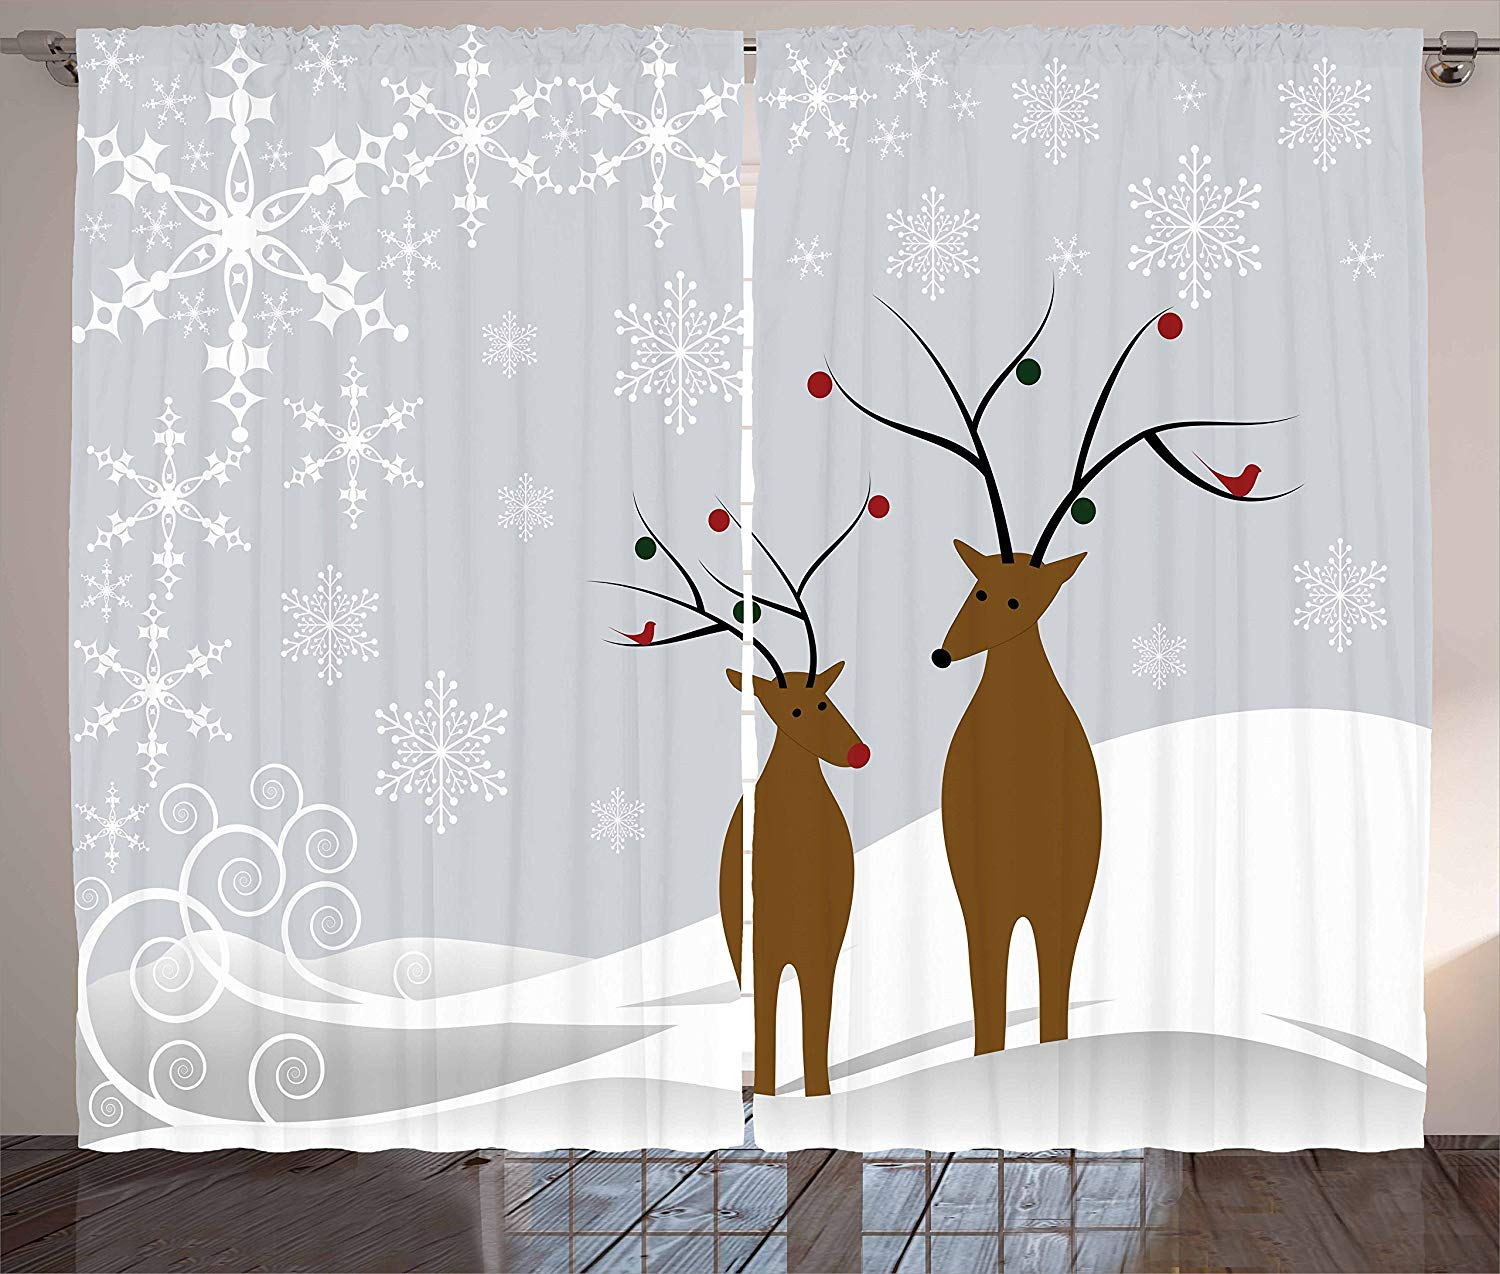 Christmas Curtains Cute Reindeers At Noel Time Yule With Snowflakes In Winter Santa Print Living Room Bedroom Window Decor